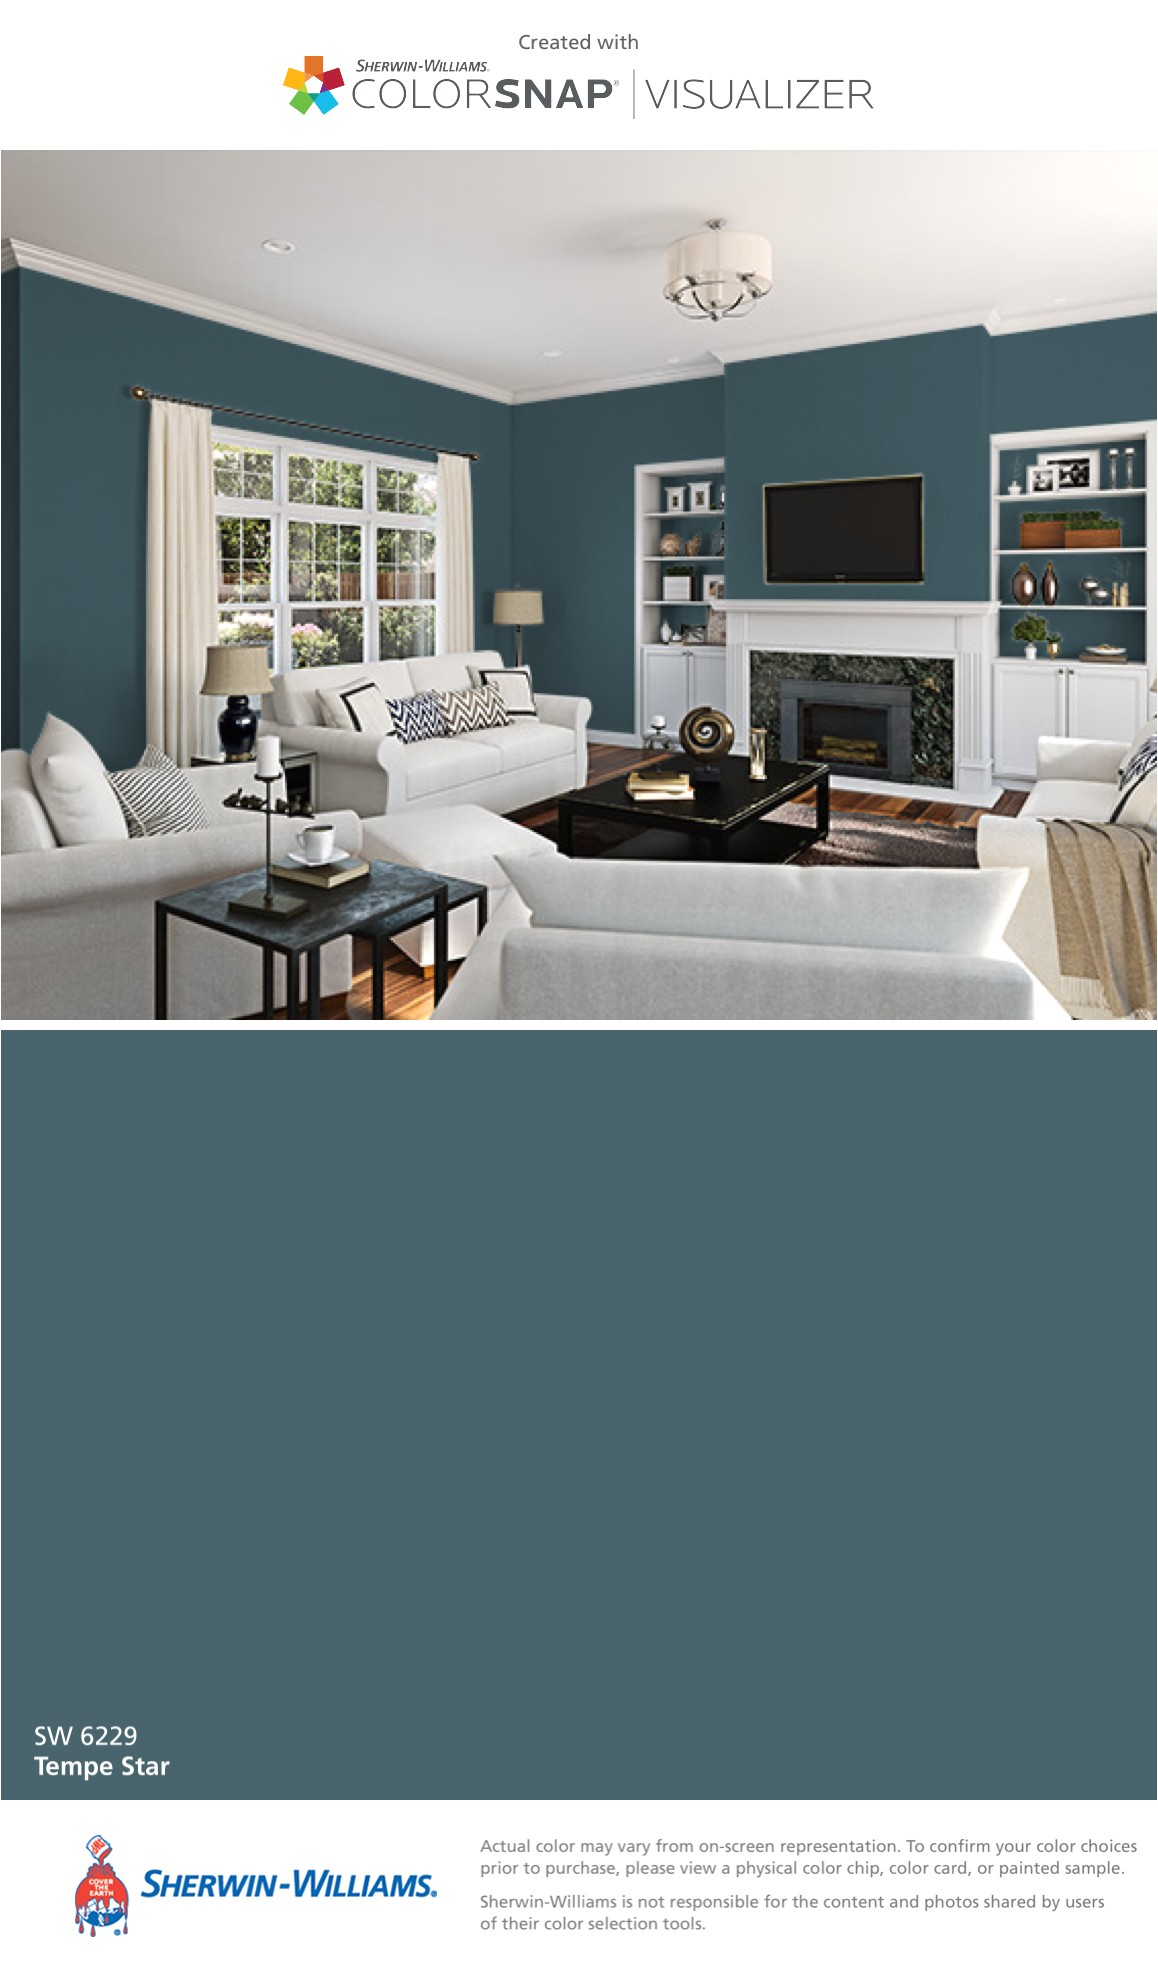 i found this color with colorsnapa visualizer for iphone by sherwin williams tempe star sw 6229